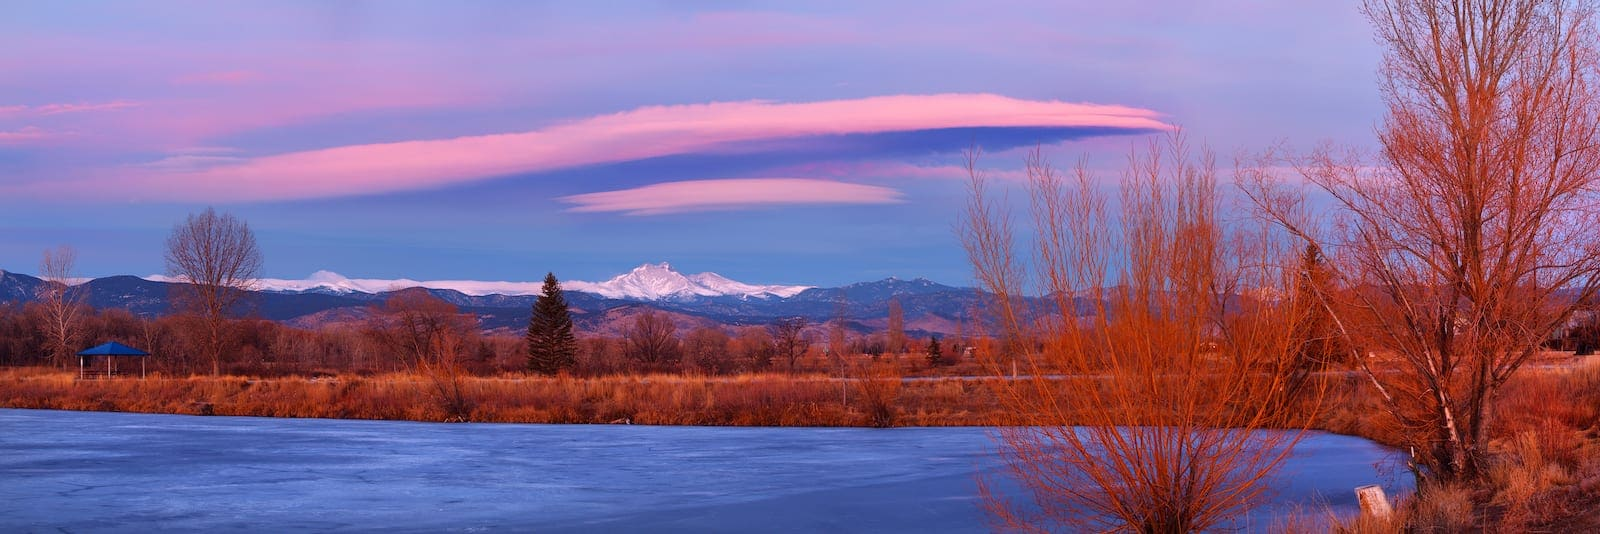 Golden Ponds Park Sunrise Longmont CO